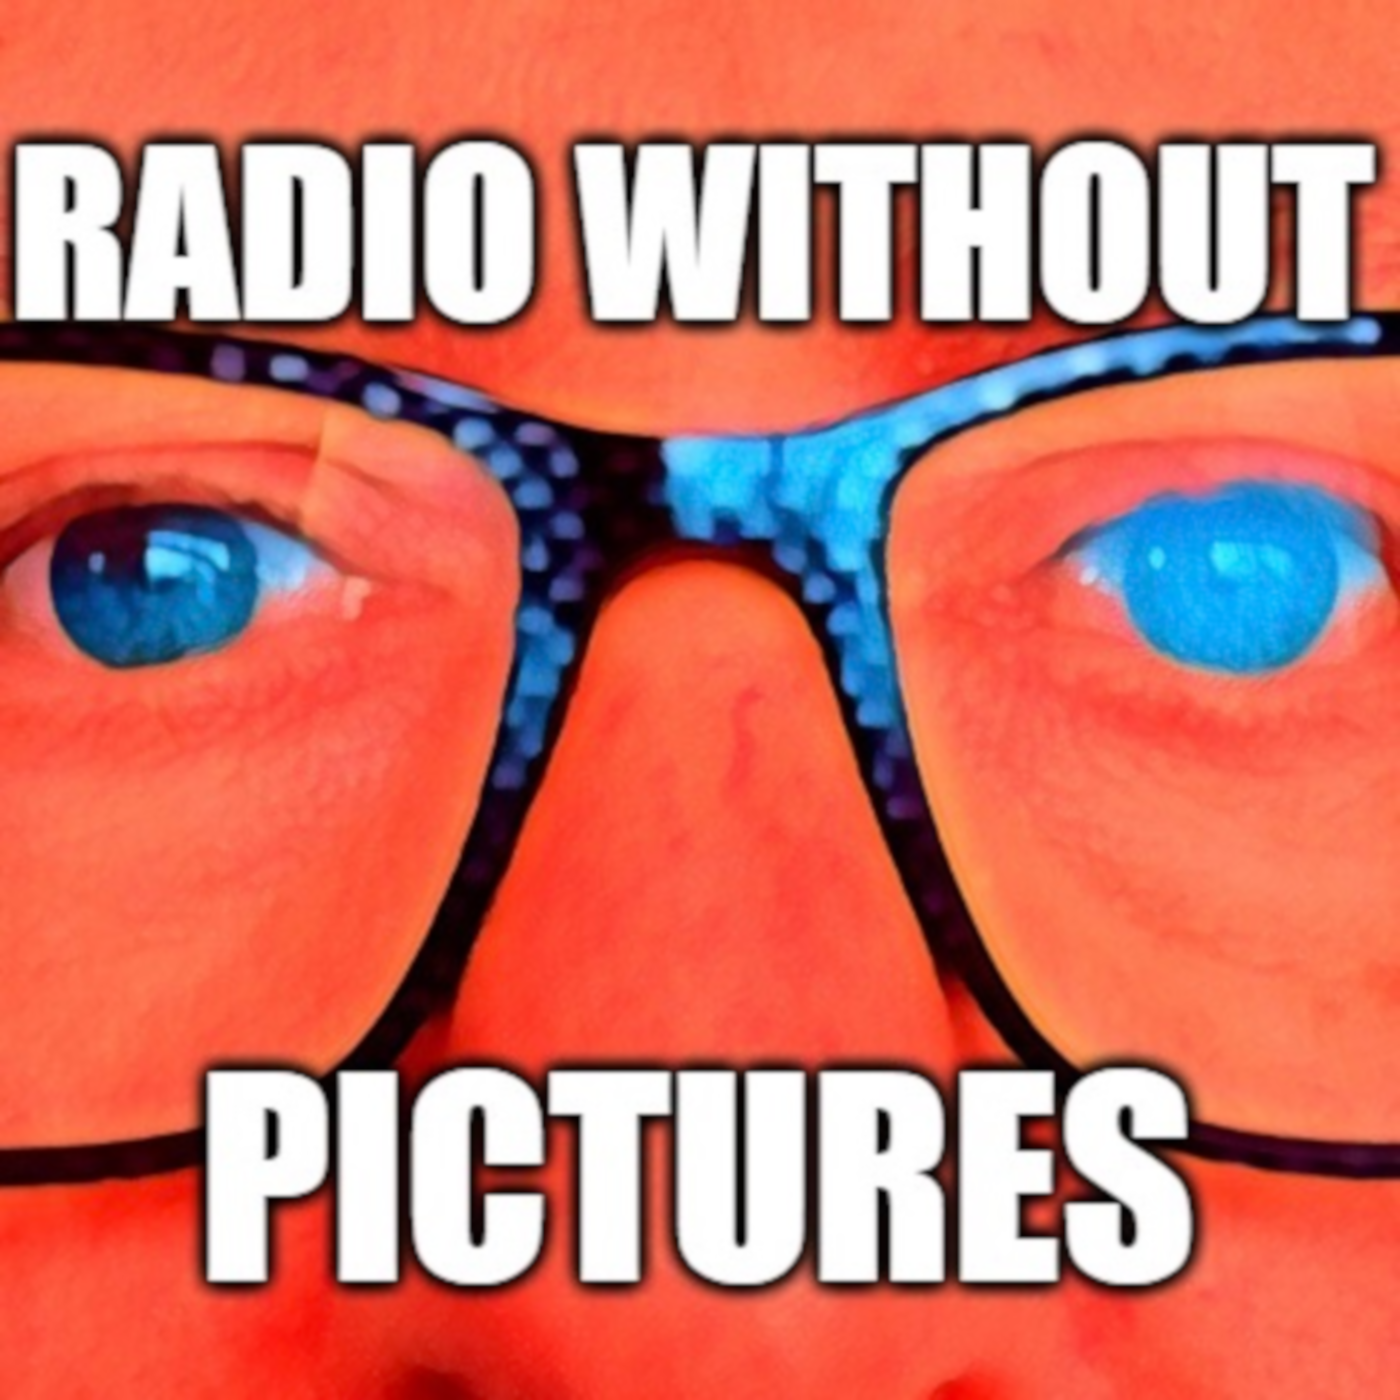 Radio without Pictures - Darren Ludlow-21-11-2019